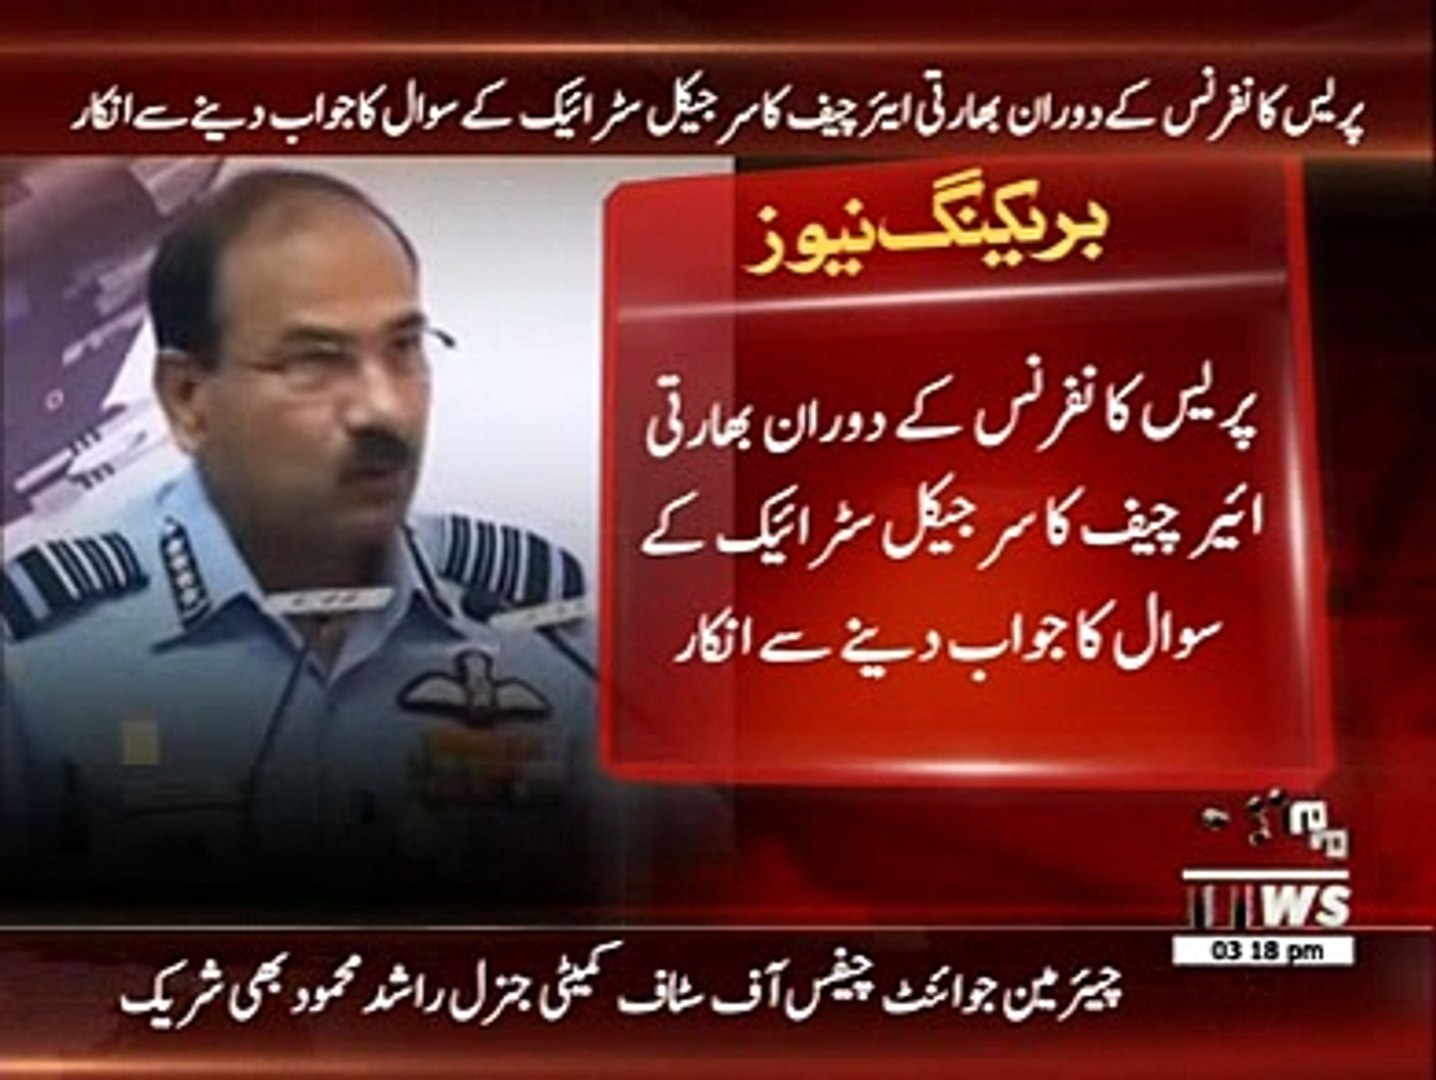 Indian air chief refuses to answer on surgical strike